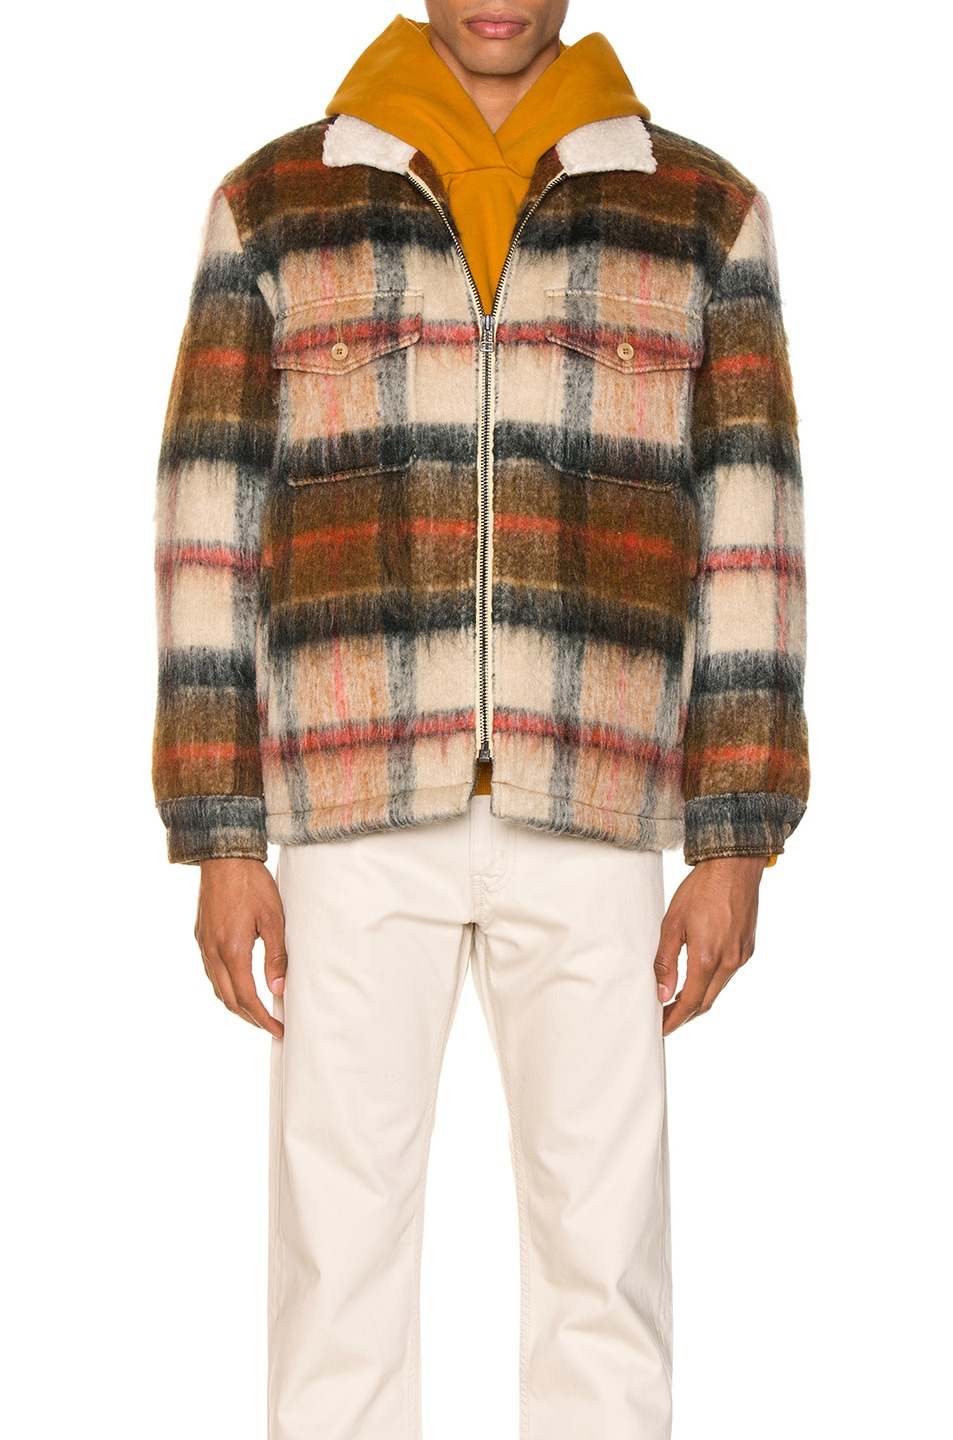 Image 2 of LEVI'S: Made & Crafted Sherpa Ranch Coat in Temescal Leather Brown